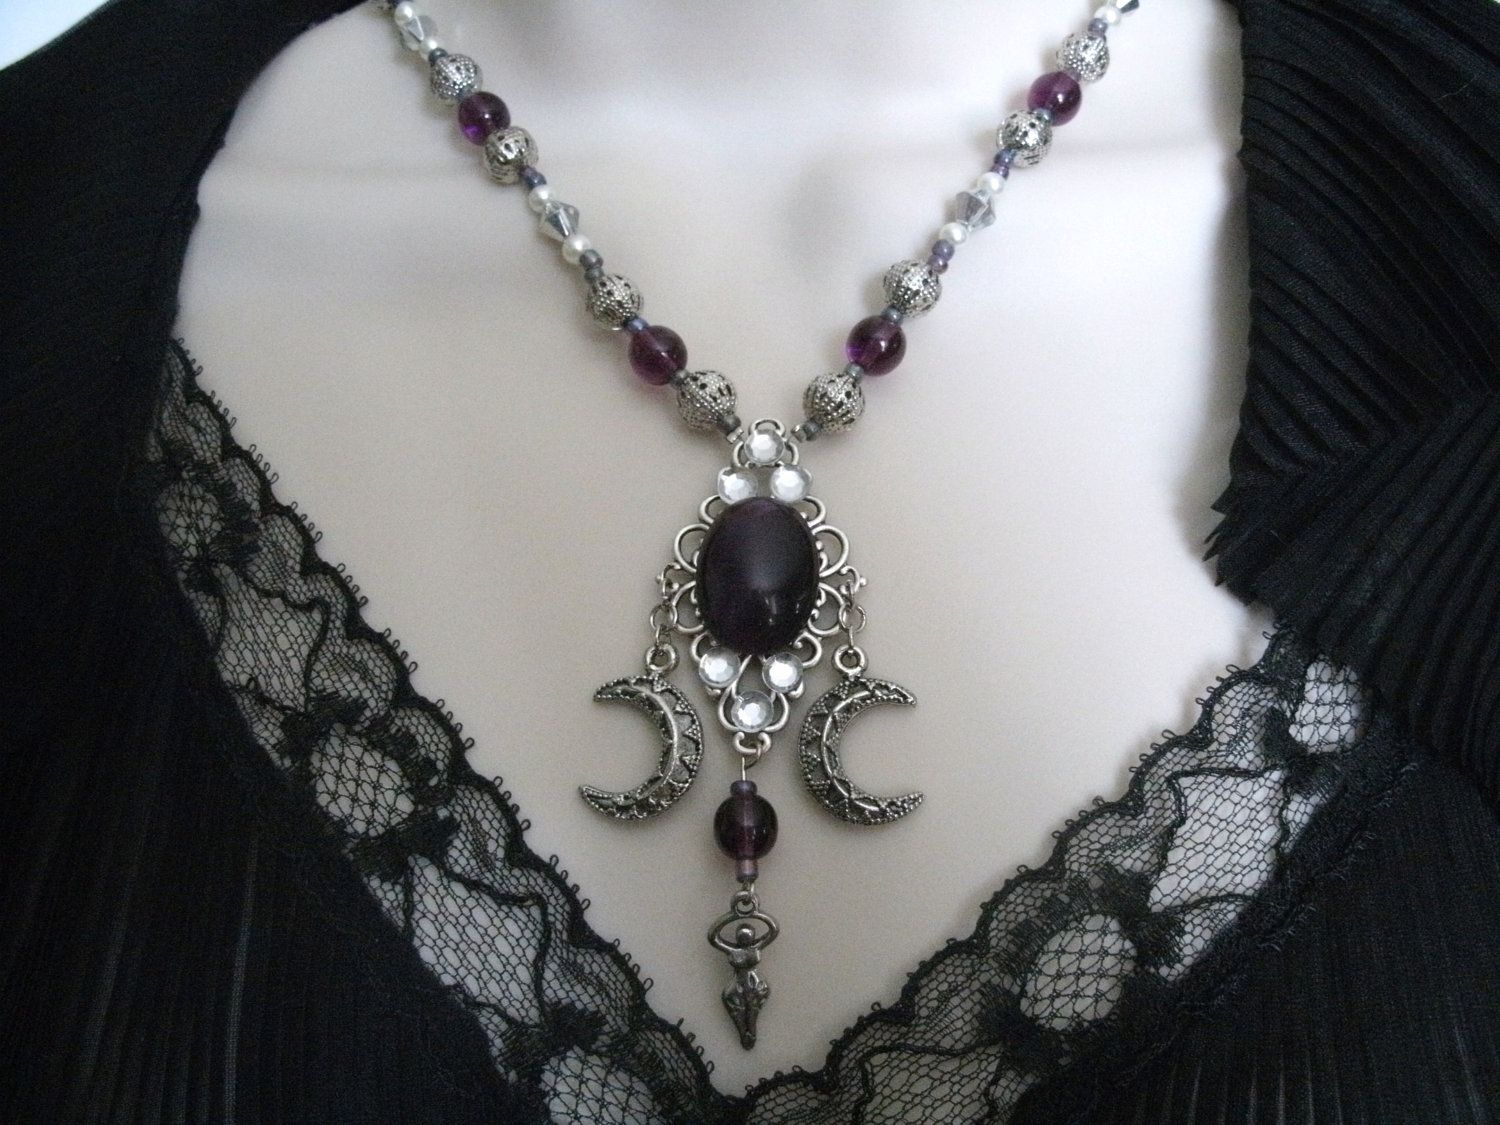 pin triple hecate amulet pendant hekate unique goddess magic purple witch unisex amethyst art wearable jewelry necklace